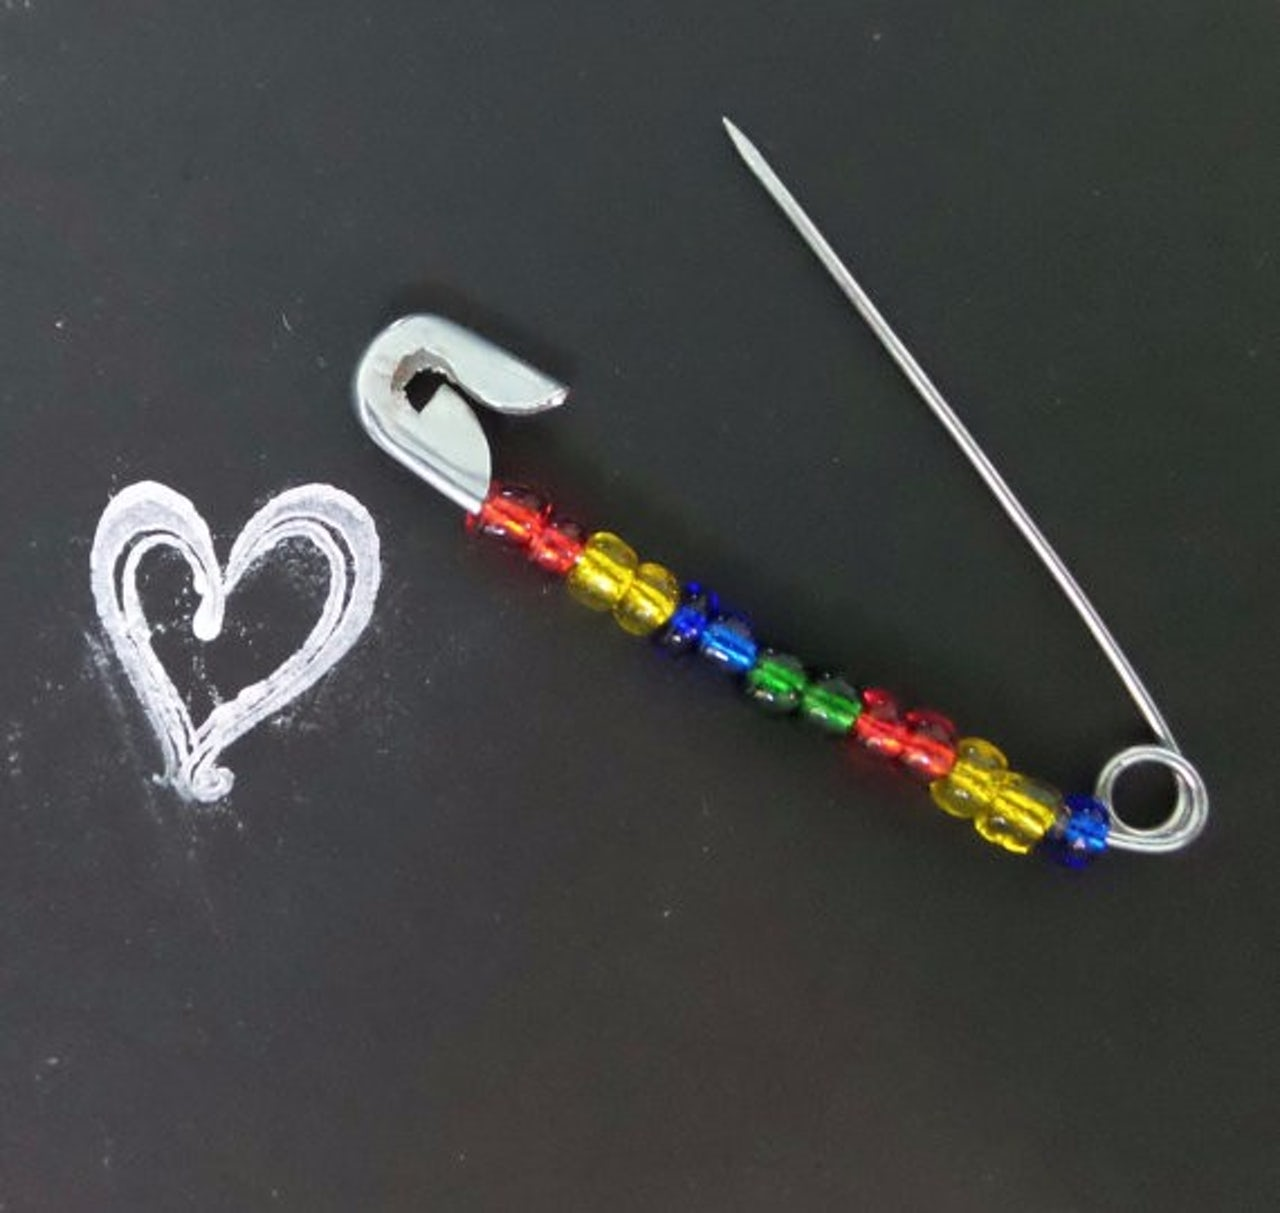 An LGBTQ-themed safety pin. The shop also has safety pins for expressing solidarity with Jews, Native Americans, and others.